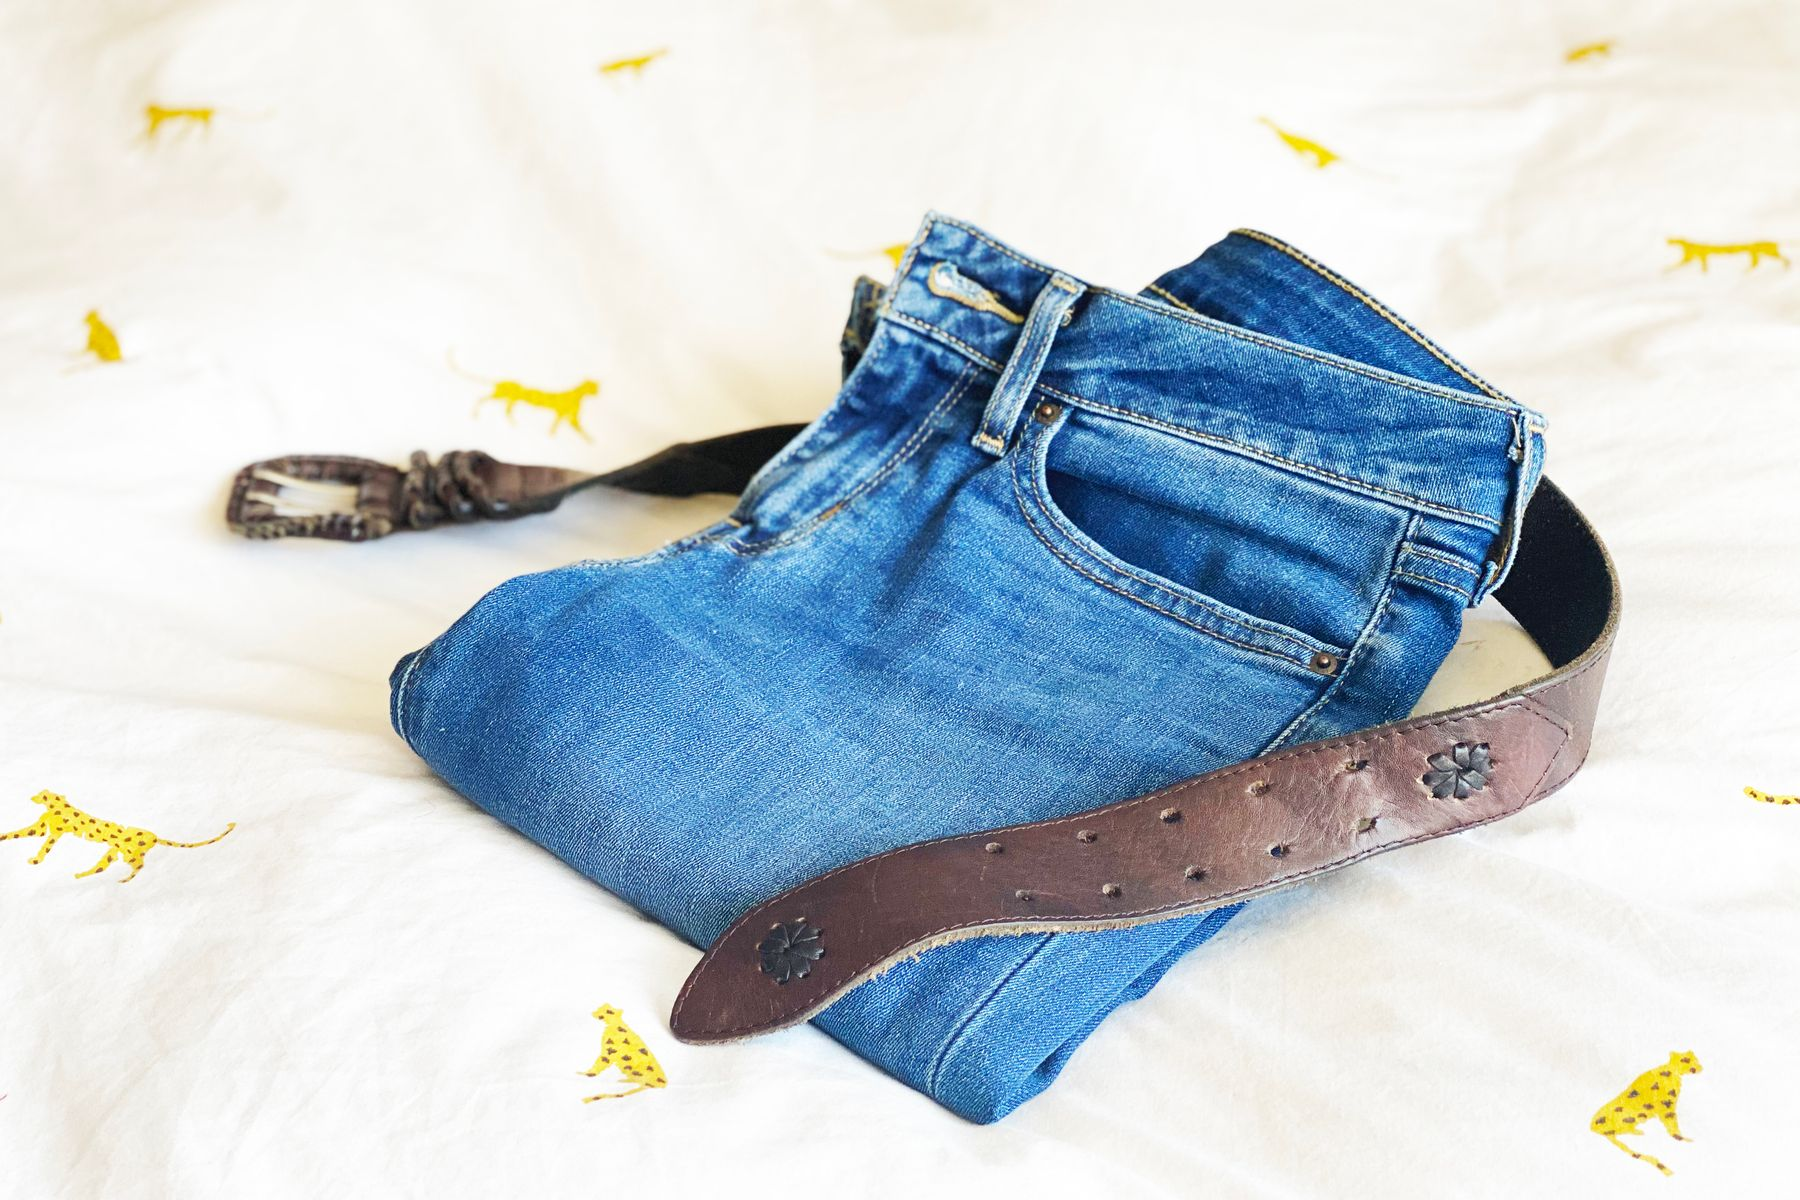 A pair of folded jeans and a belt on a bed